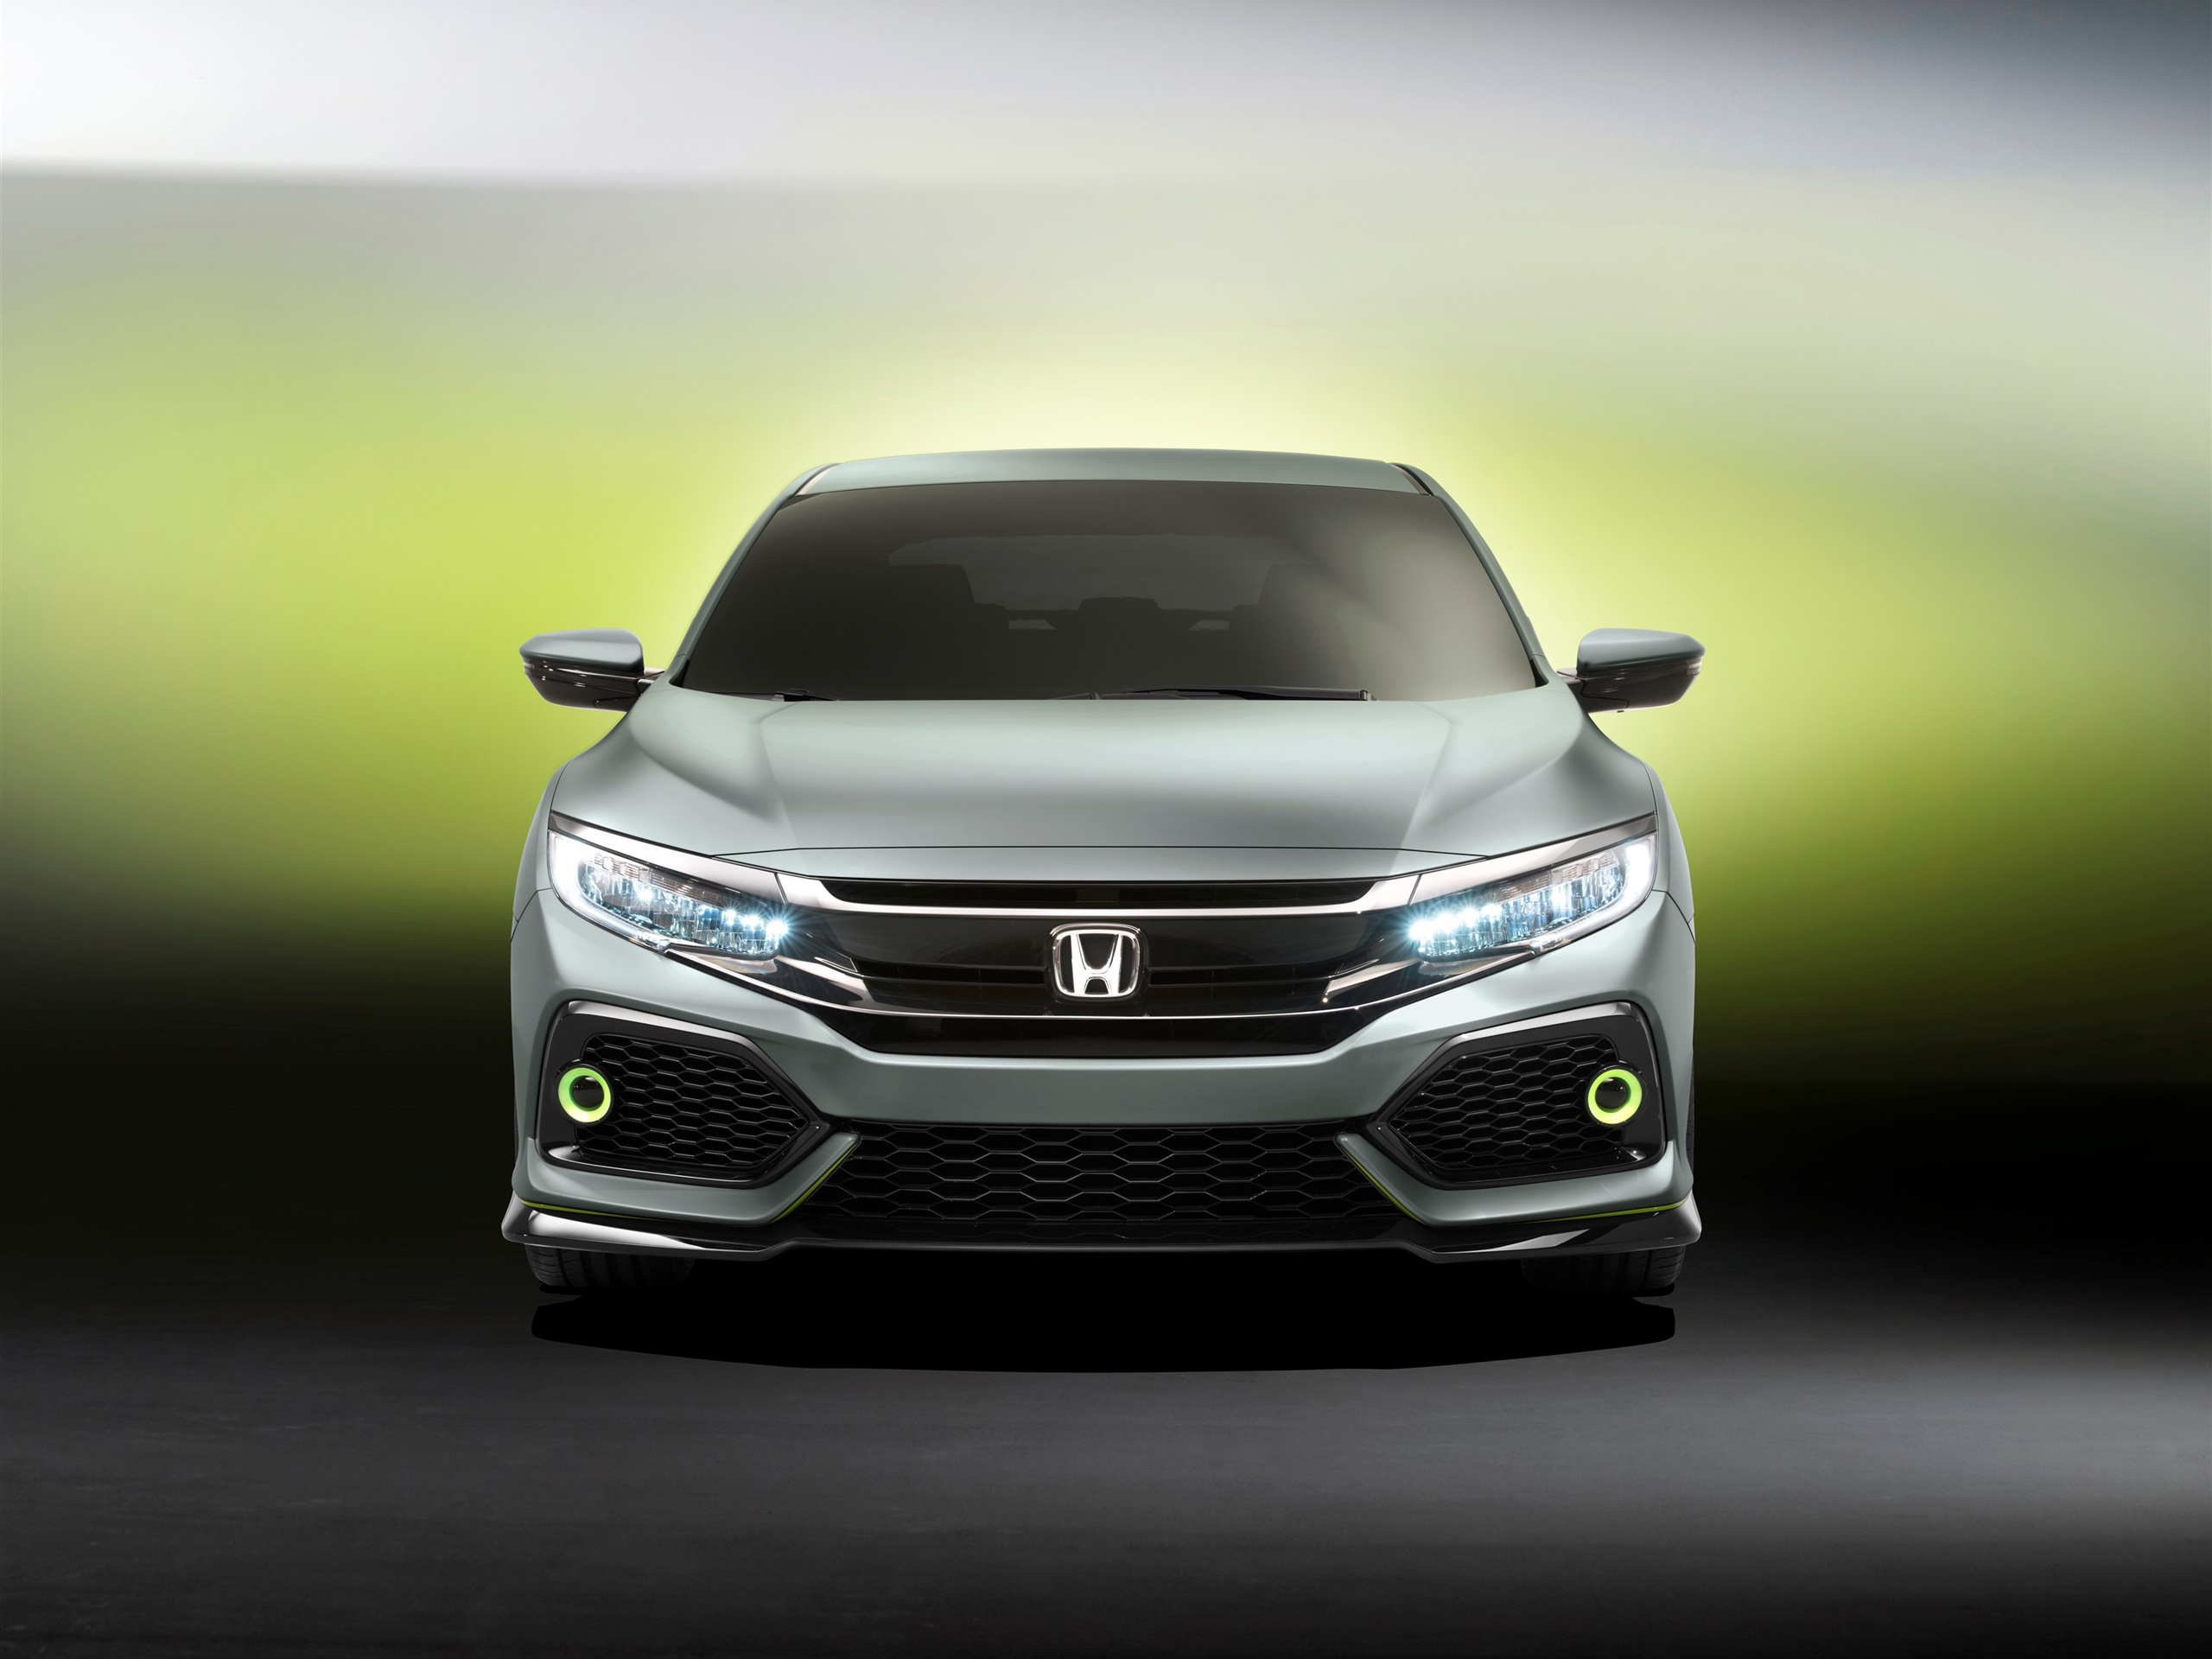 Honda Civic Hatchback car front view 2560x1920 wallpaper